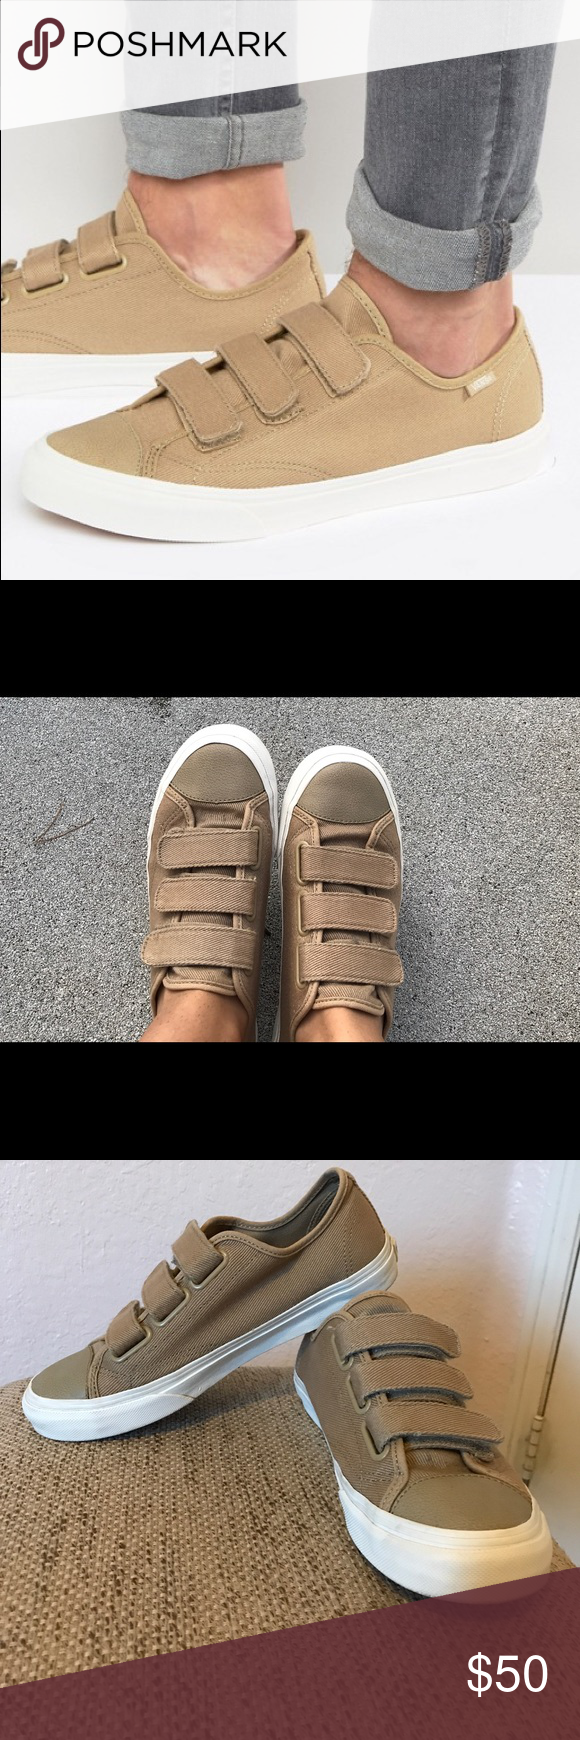 vans prison issue beige